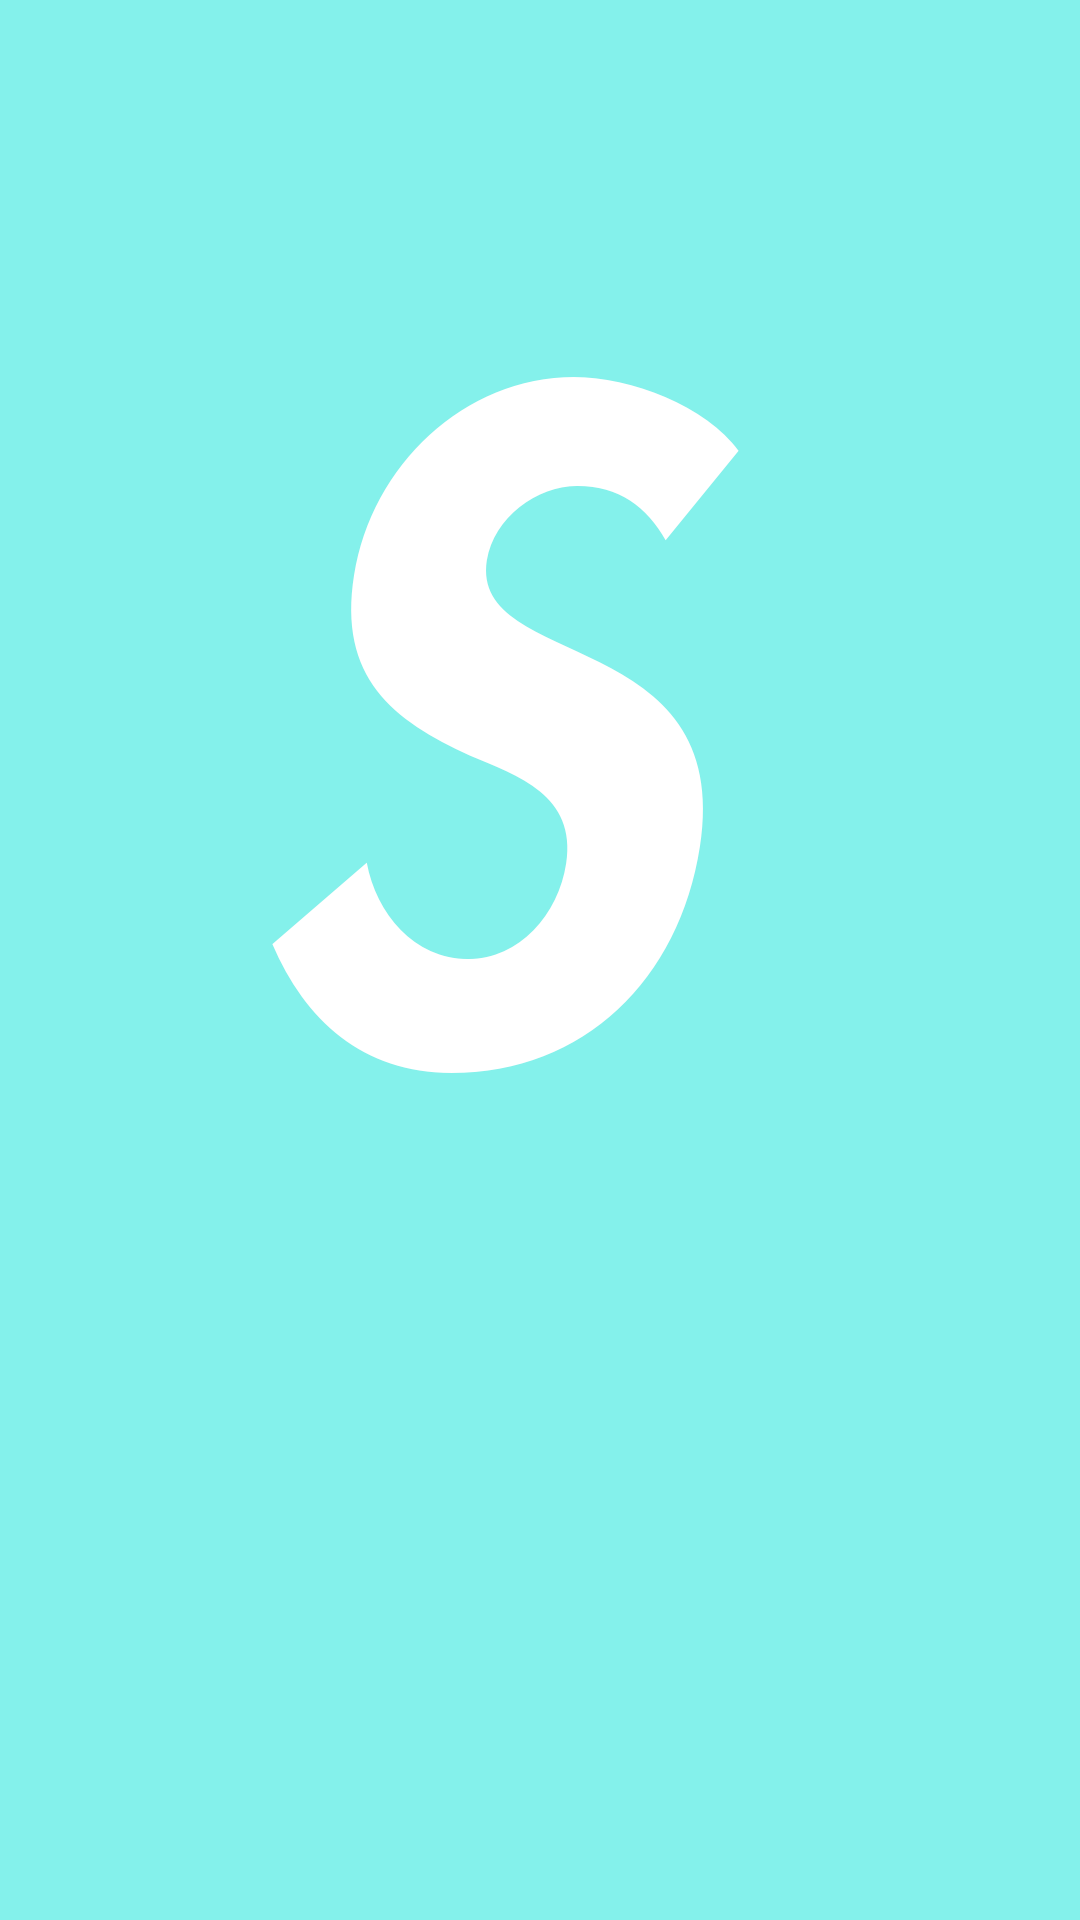 Art] Simple Supreme Wallpapers streetwear 1080x1920